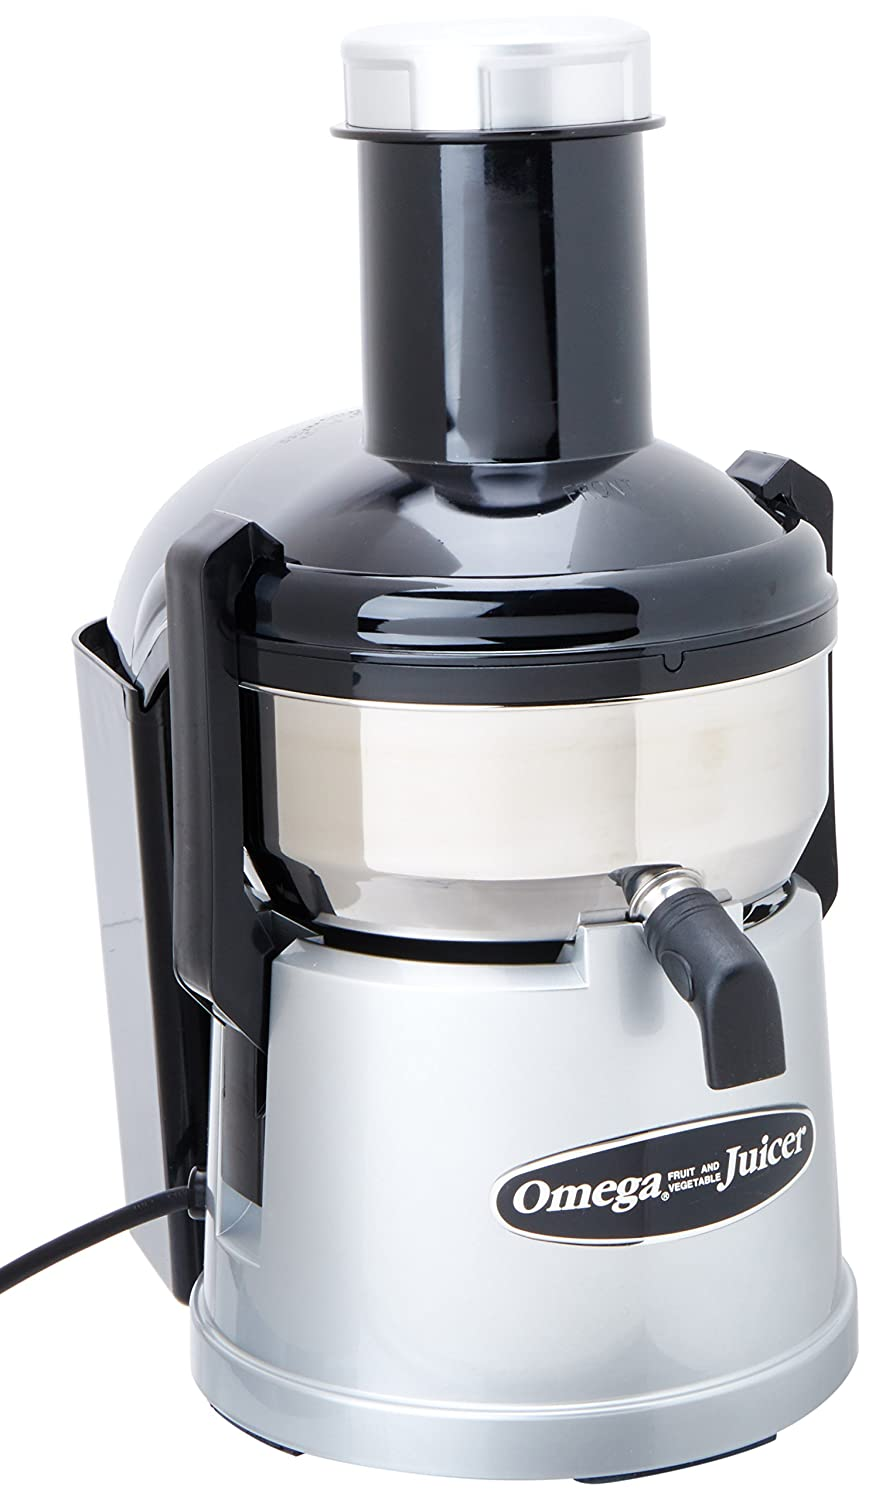 Omega BMJ330 Commercial 350-Watt Stainless-Steel Pulp-Ejection Juicer